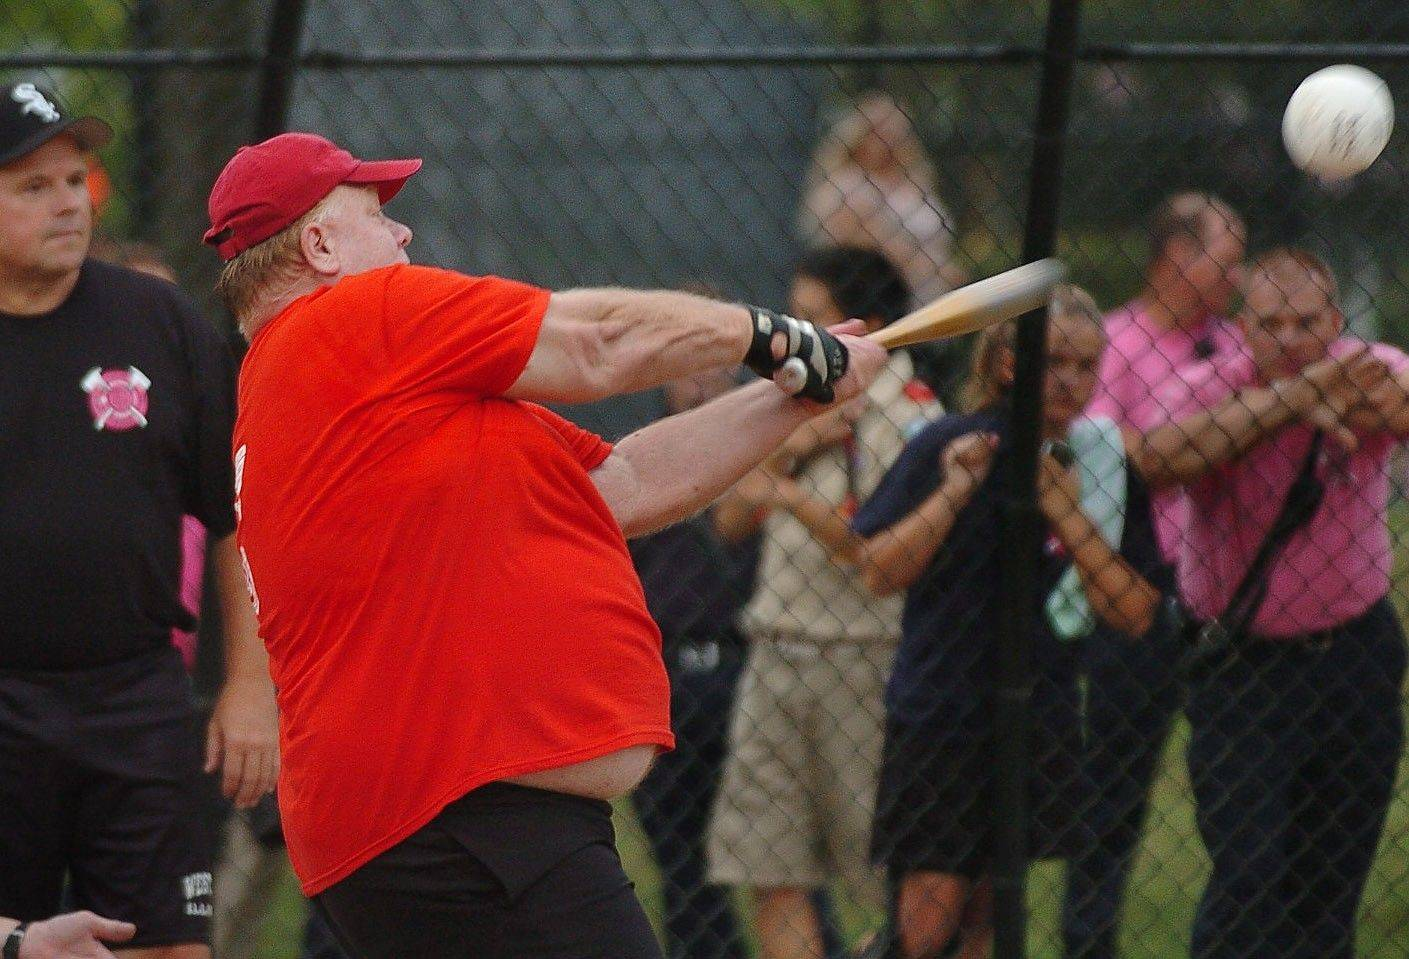 Greg Hack takes a hack at a pitch during the 2010 charity softball game.